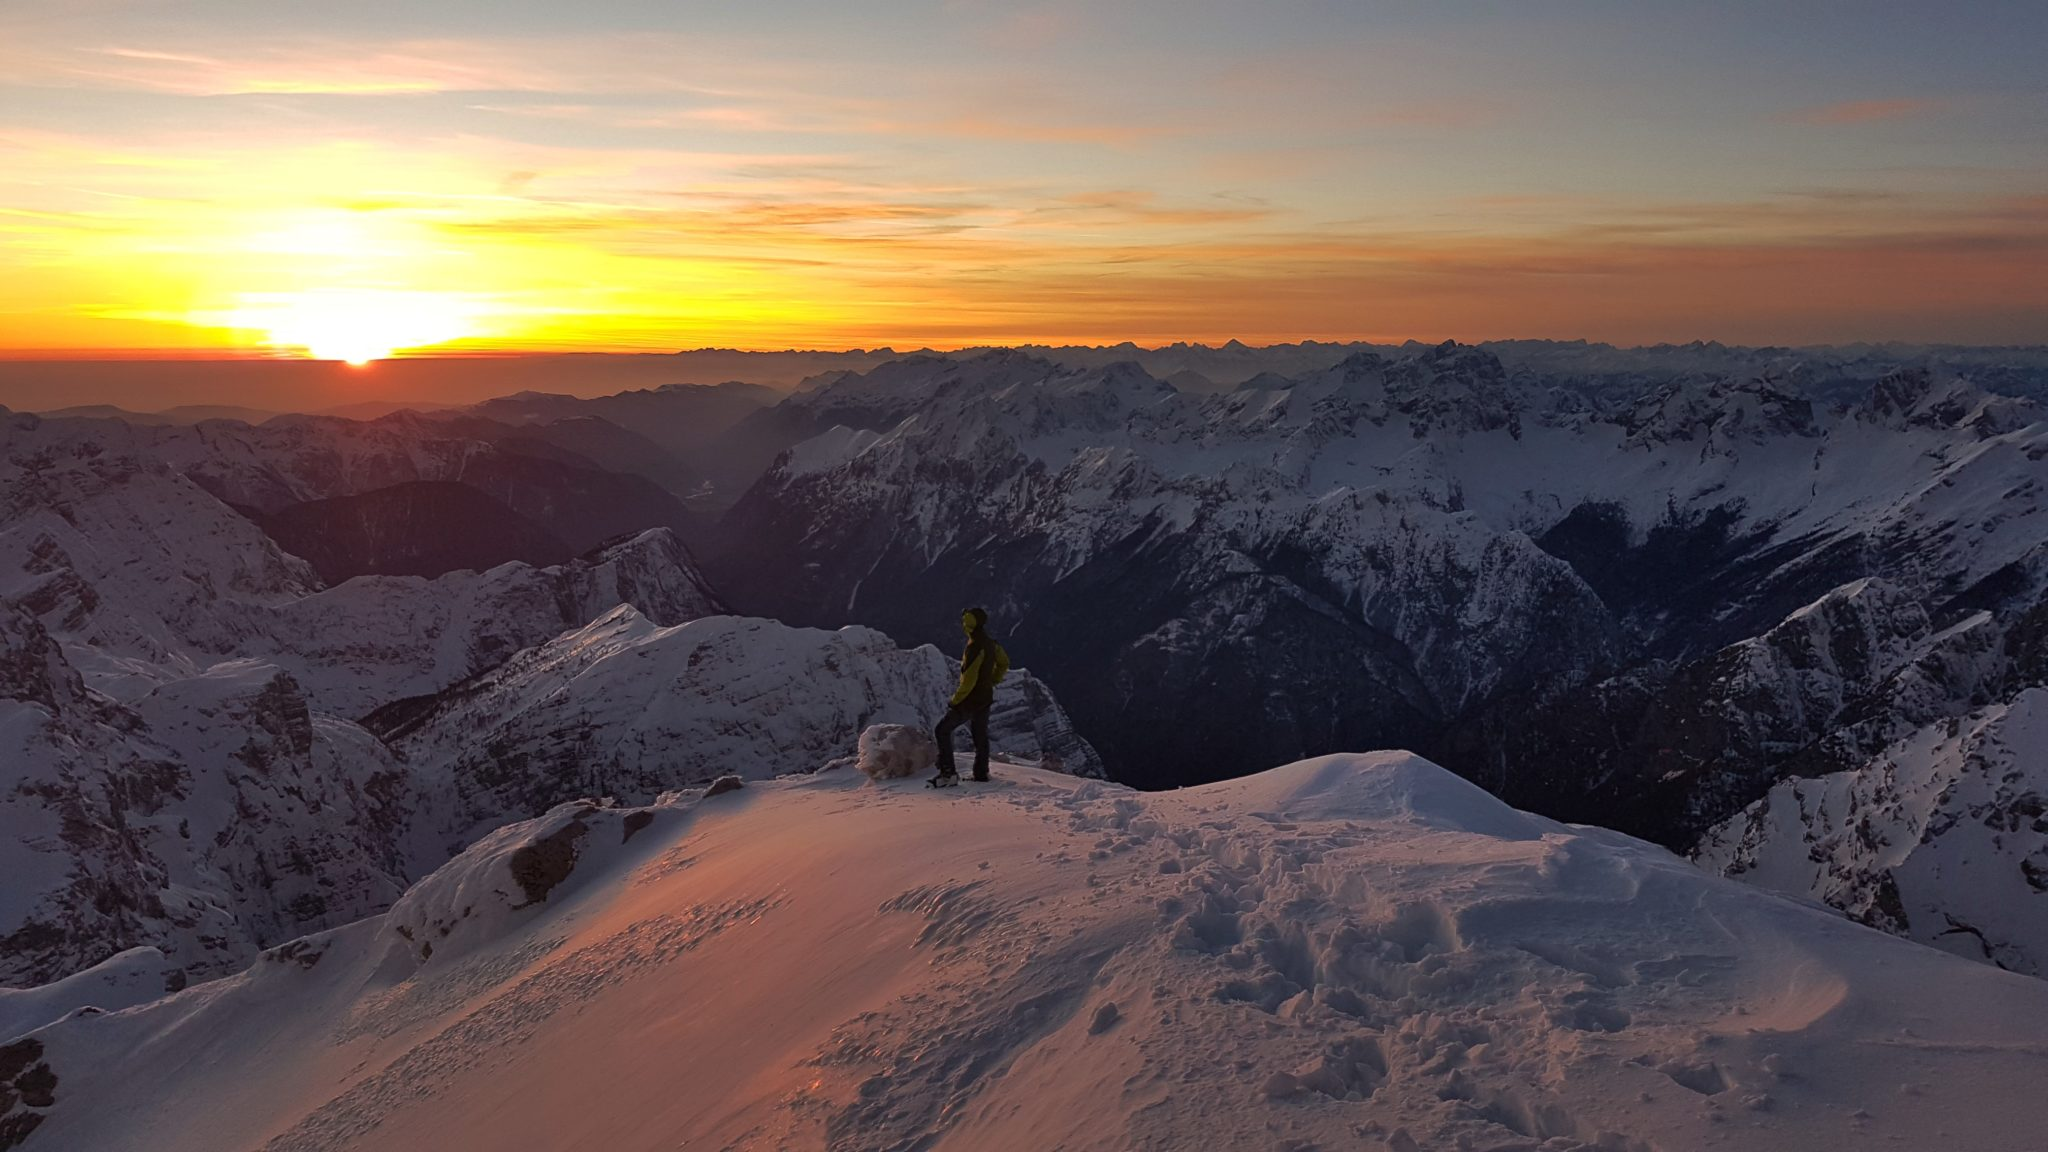 Triglav for sunset, Julian Alps, Slovenia, sunset mountain photography